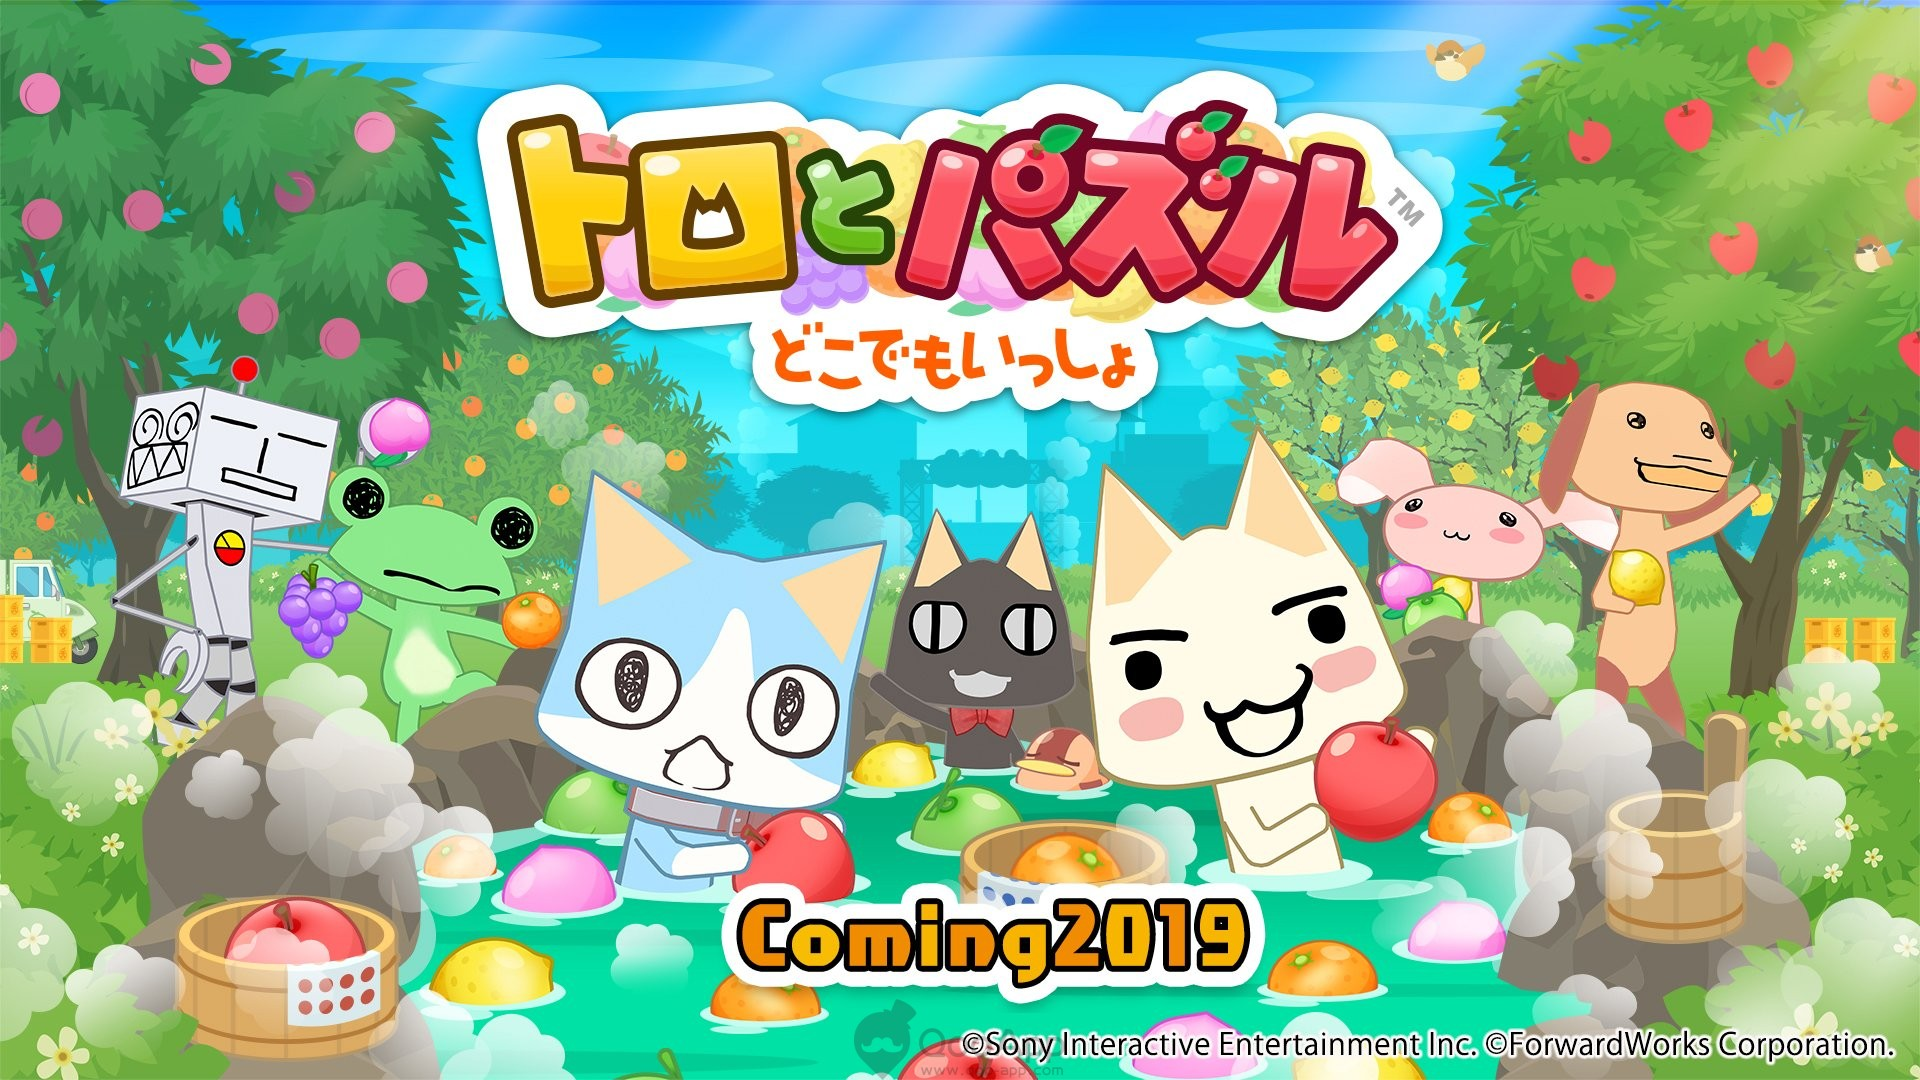 Mobile Game Toro to Puzzle: Doko Demo Issyo Announced for Doko Demo Issyo 20th Anniversary Celebration!